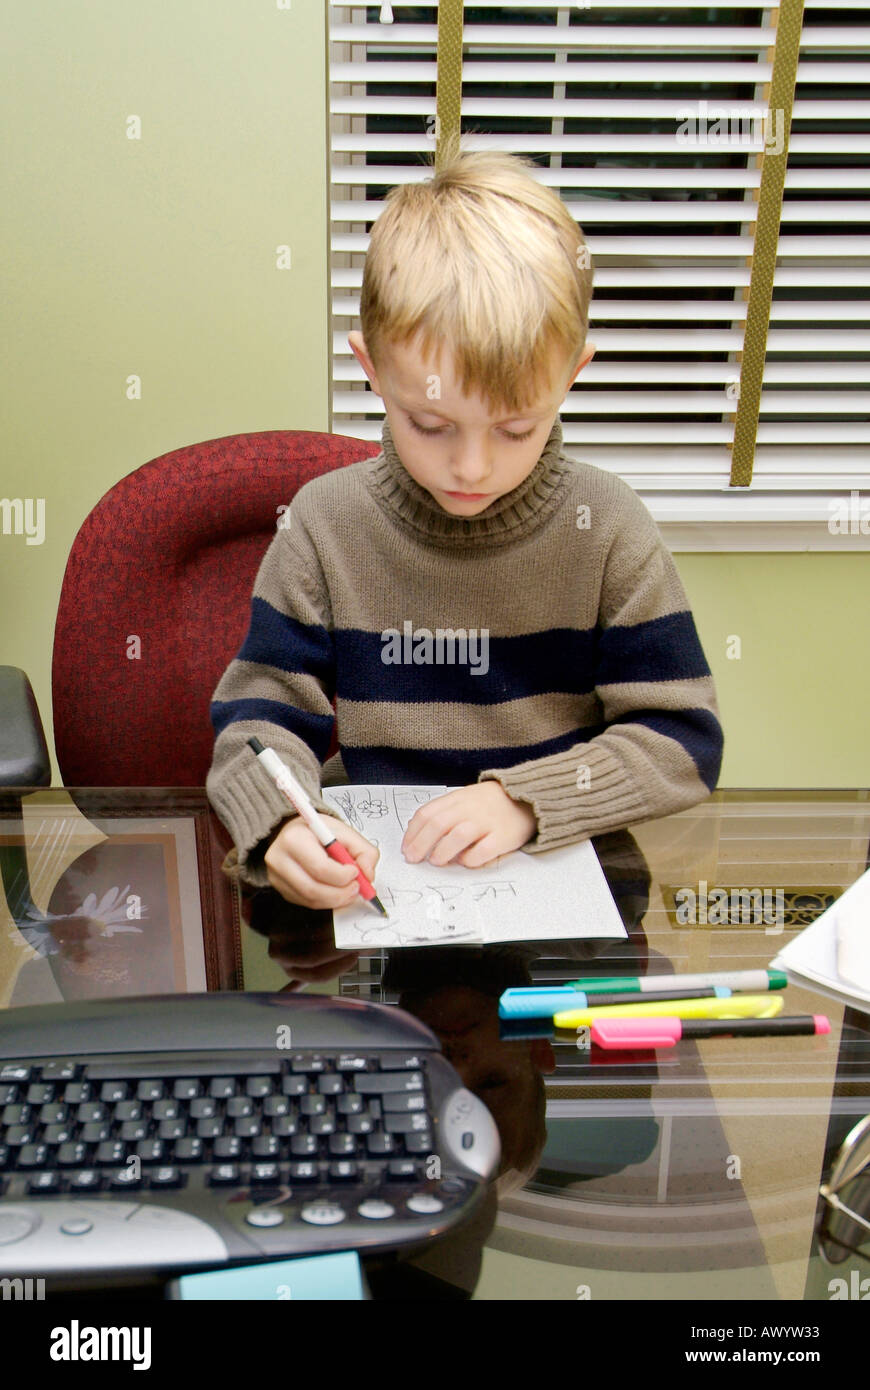 5 Five Year Old Boy Works In The Family Home Office To Make A Birthday Card For His Mothers